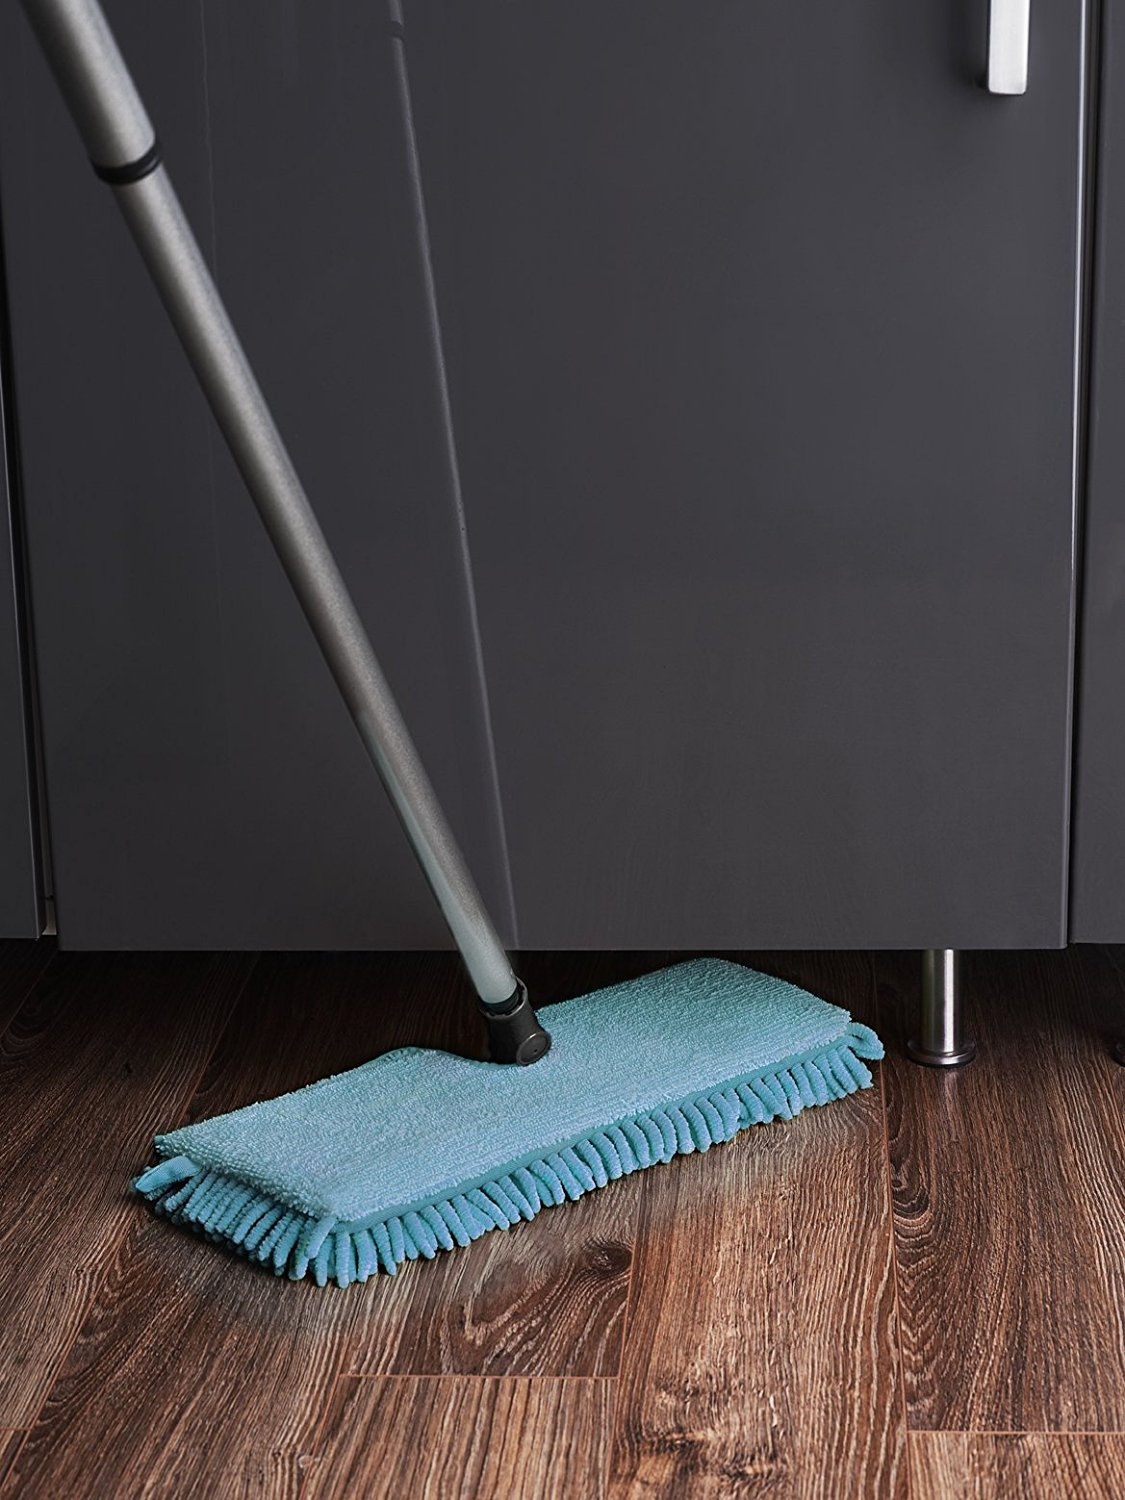 Cheap Dust Mop For Wood Floors Find Dust Mop For Wood Floors Deals